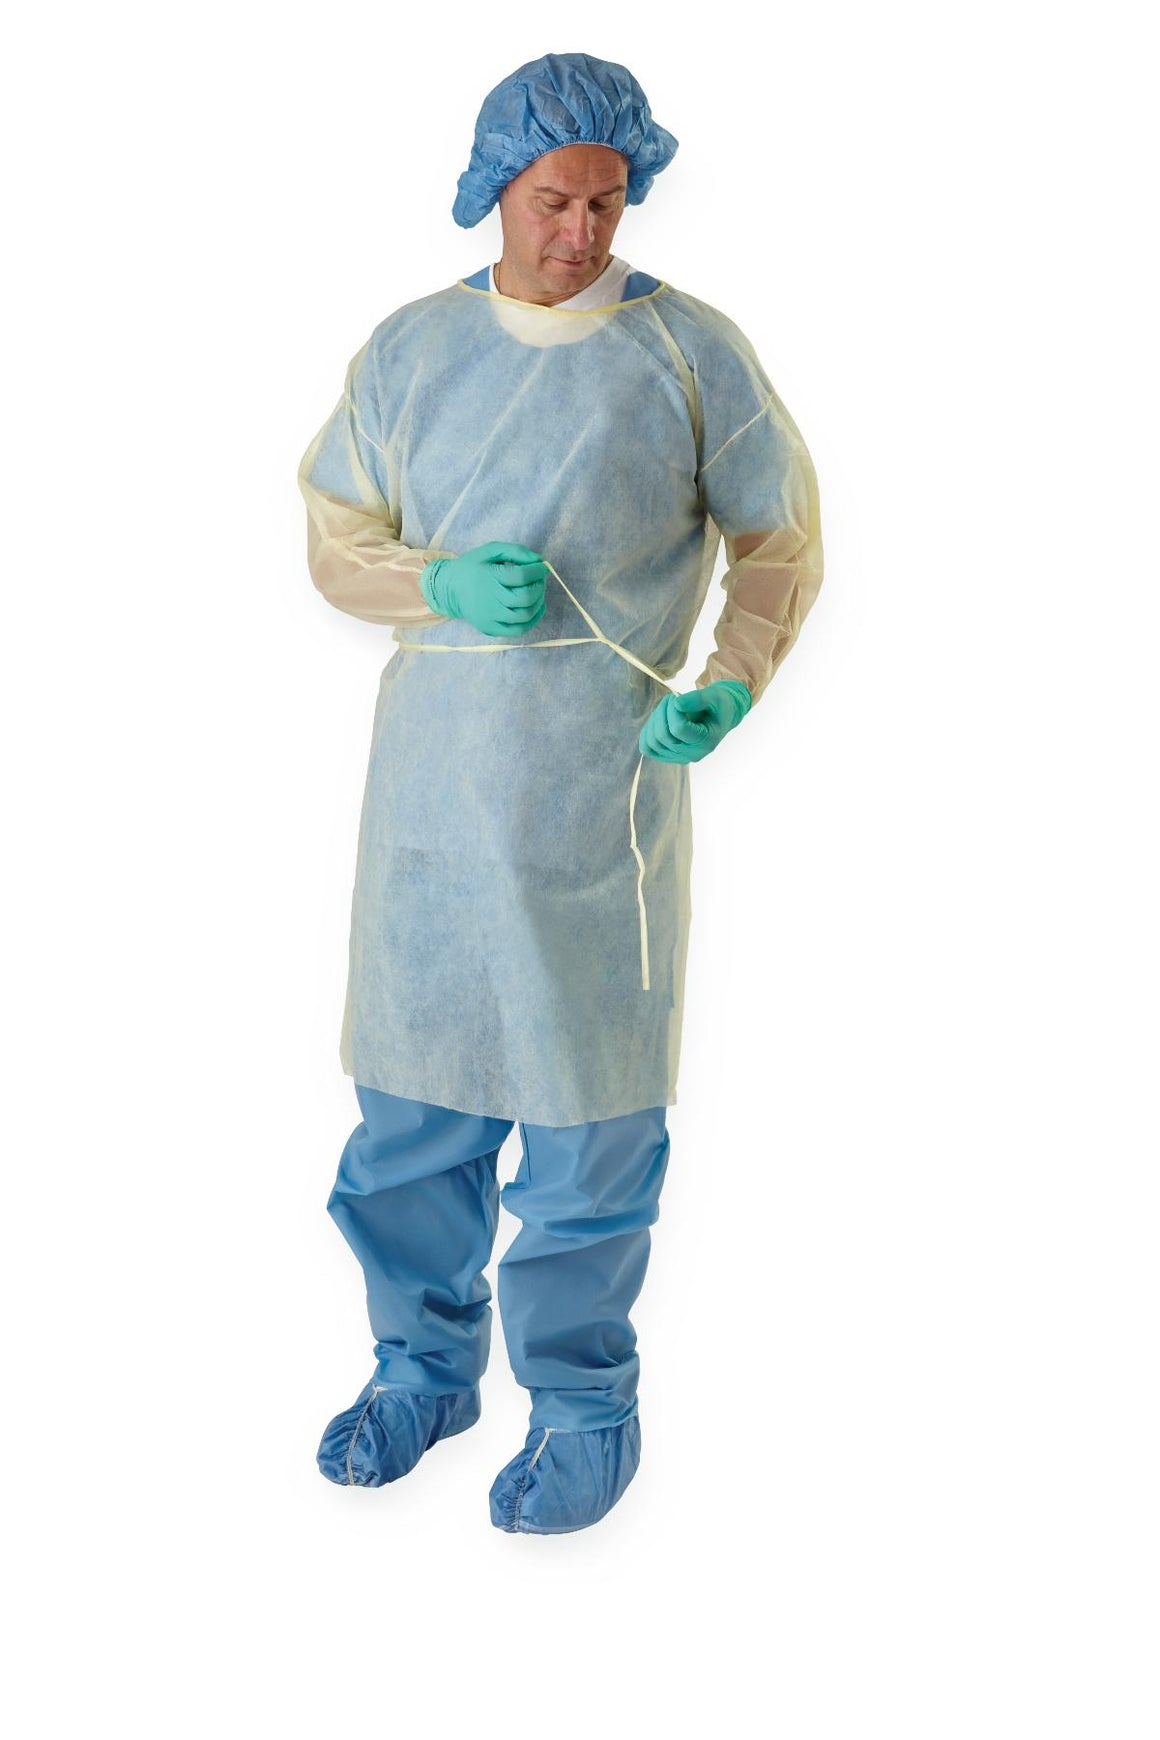 Medium Weight Multi-Ply Fluid Resistant Isolation Gown,Blue,X-Large ...